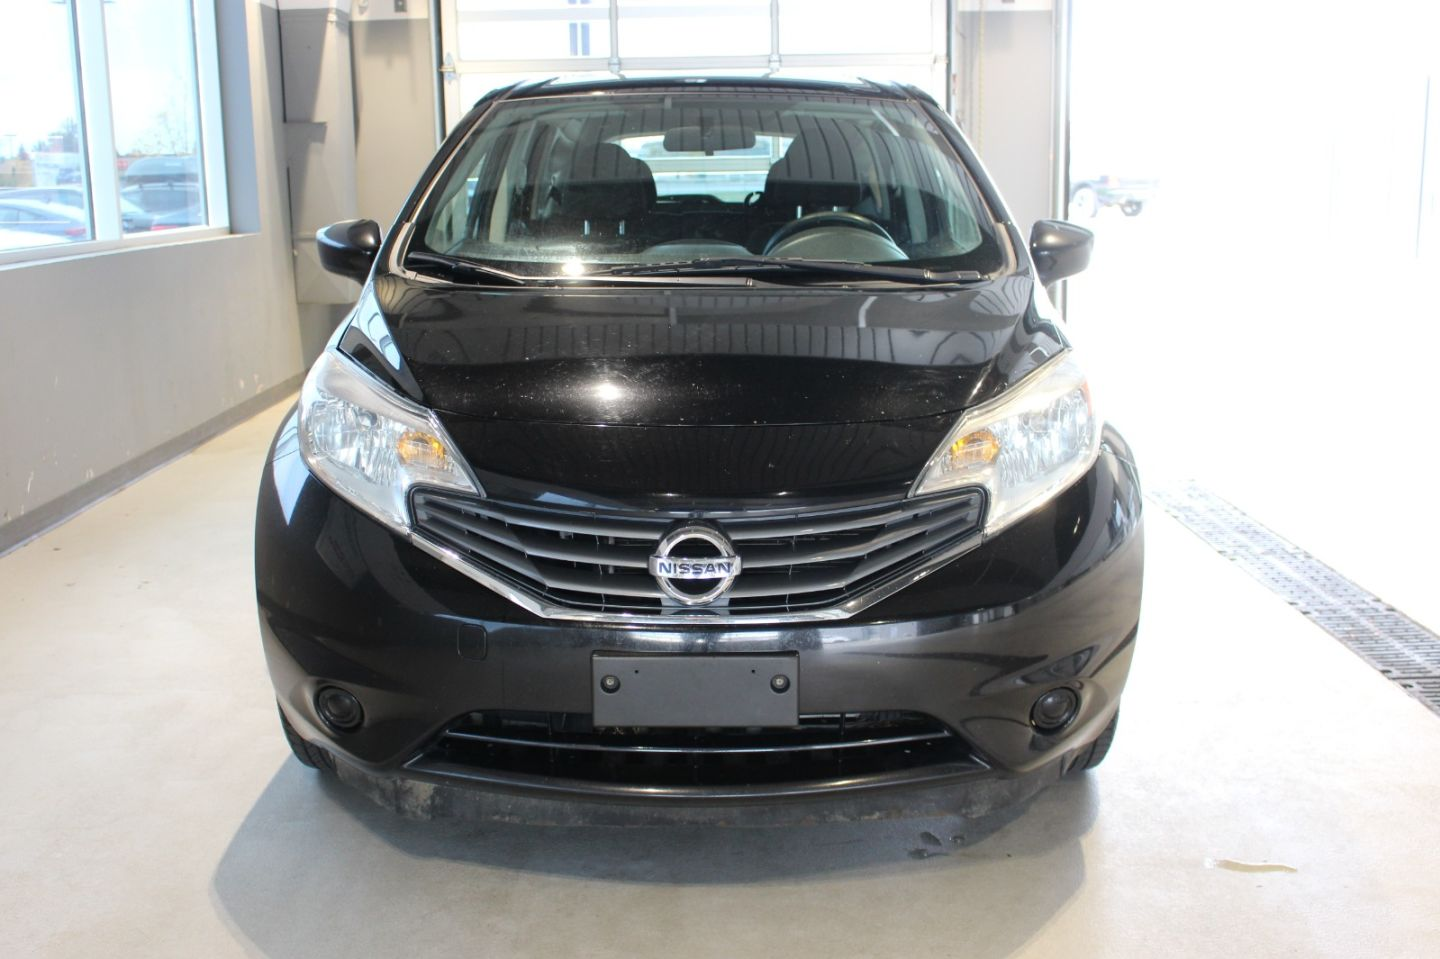 2016 Nissan Versa Note S for sale in Spruce Grove, Alberta